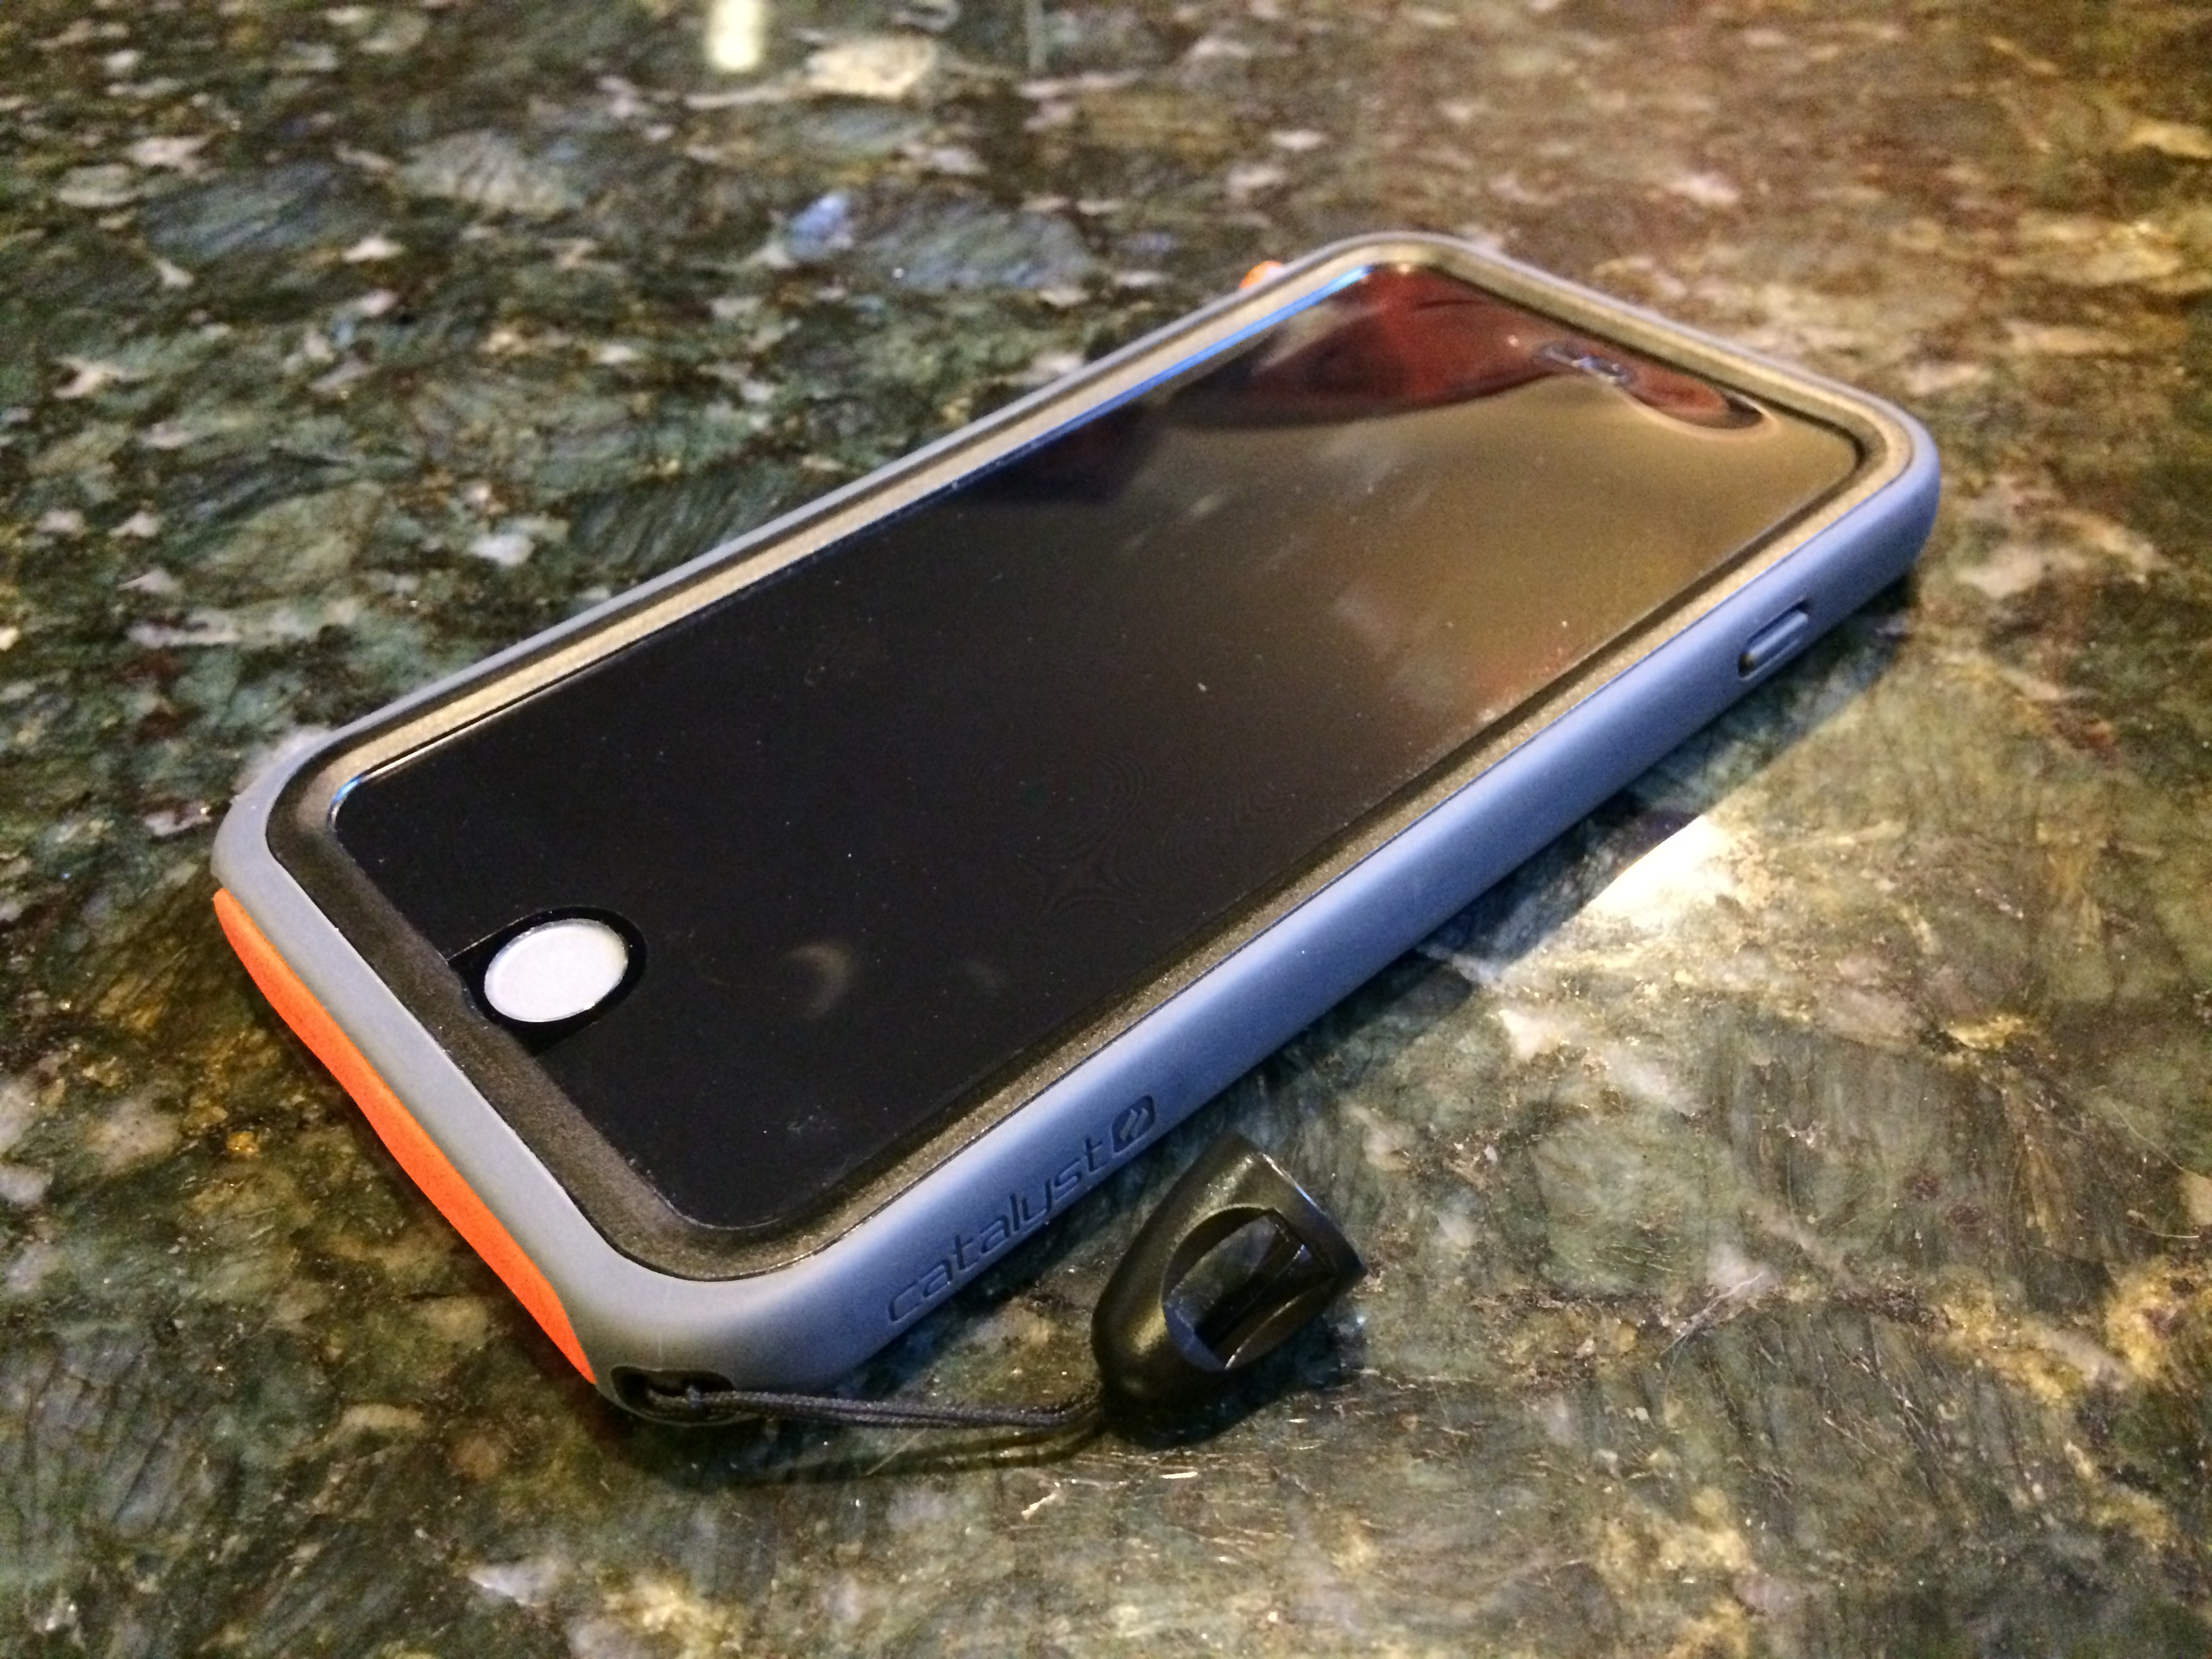 buy online 0a43a ae1dc Catalyst iPhone 6 (plus) waterproof case – SUPPDX – Paddleboarding ...